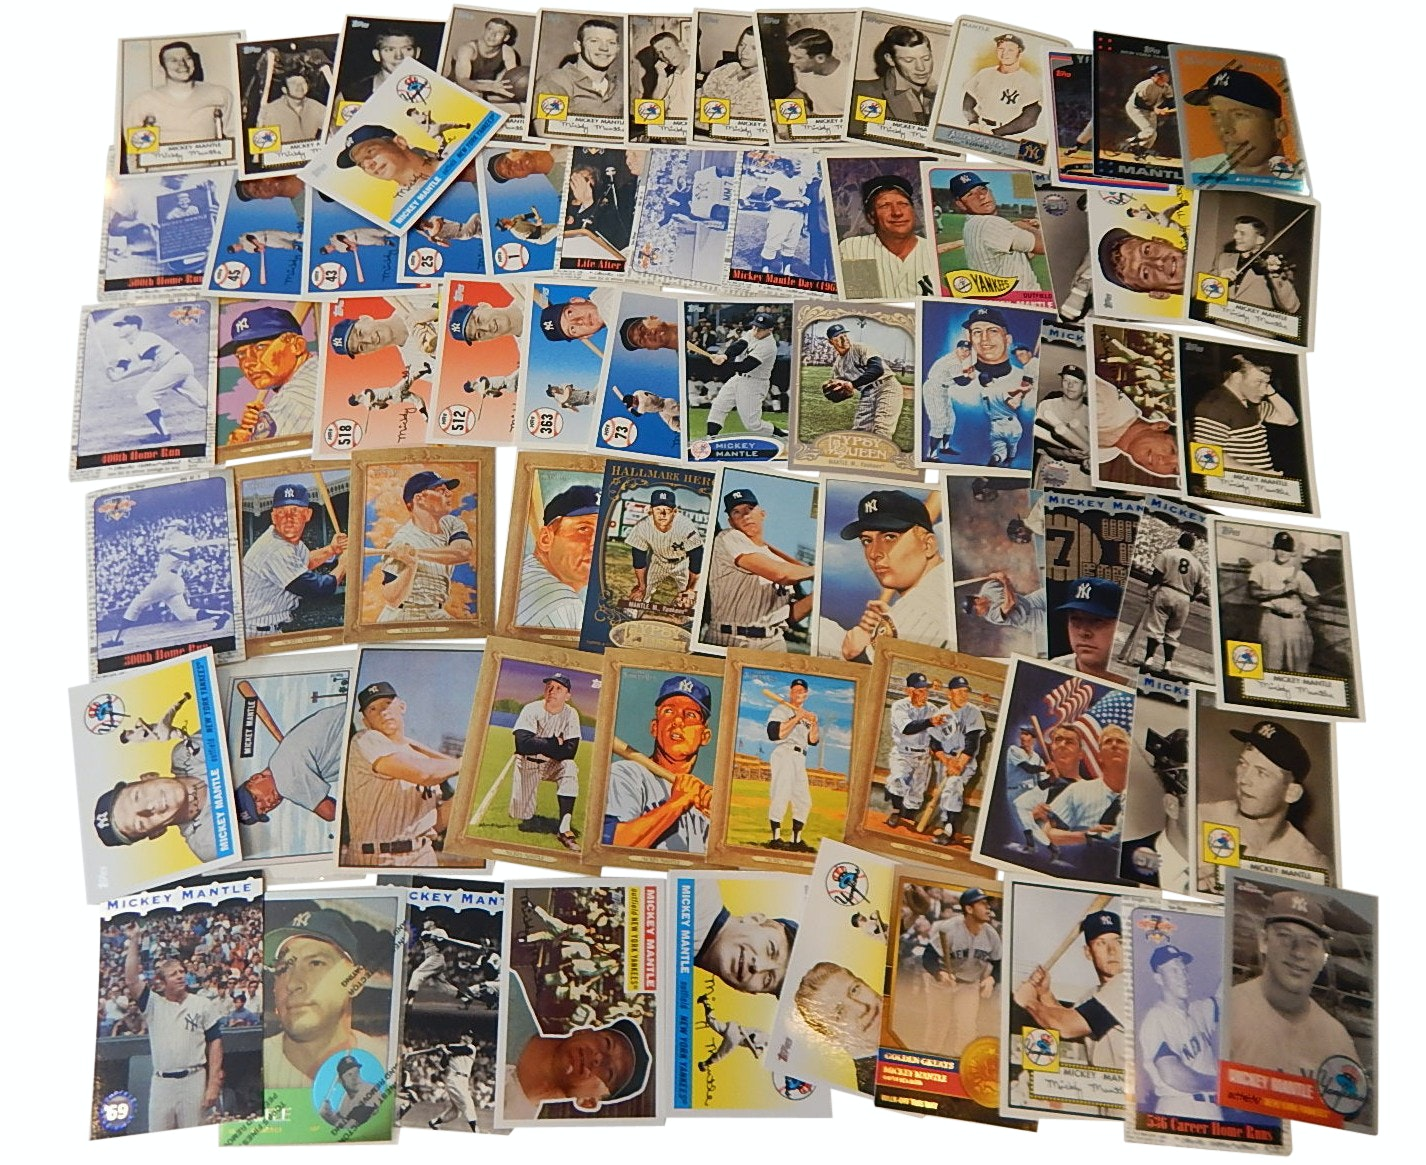 HOF Mickey Mantle Insert and Archive Baseball Card Collection from 1990s/2000s